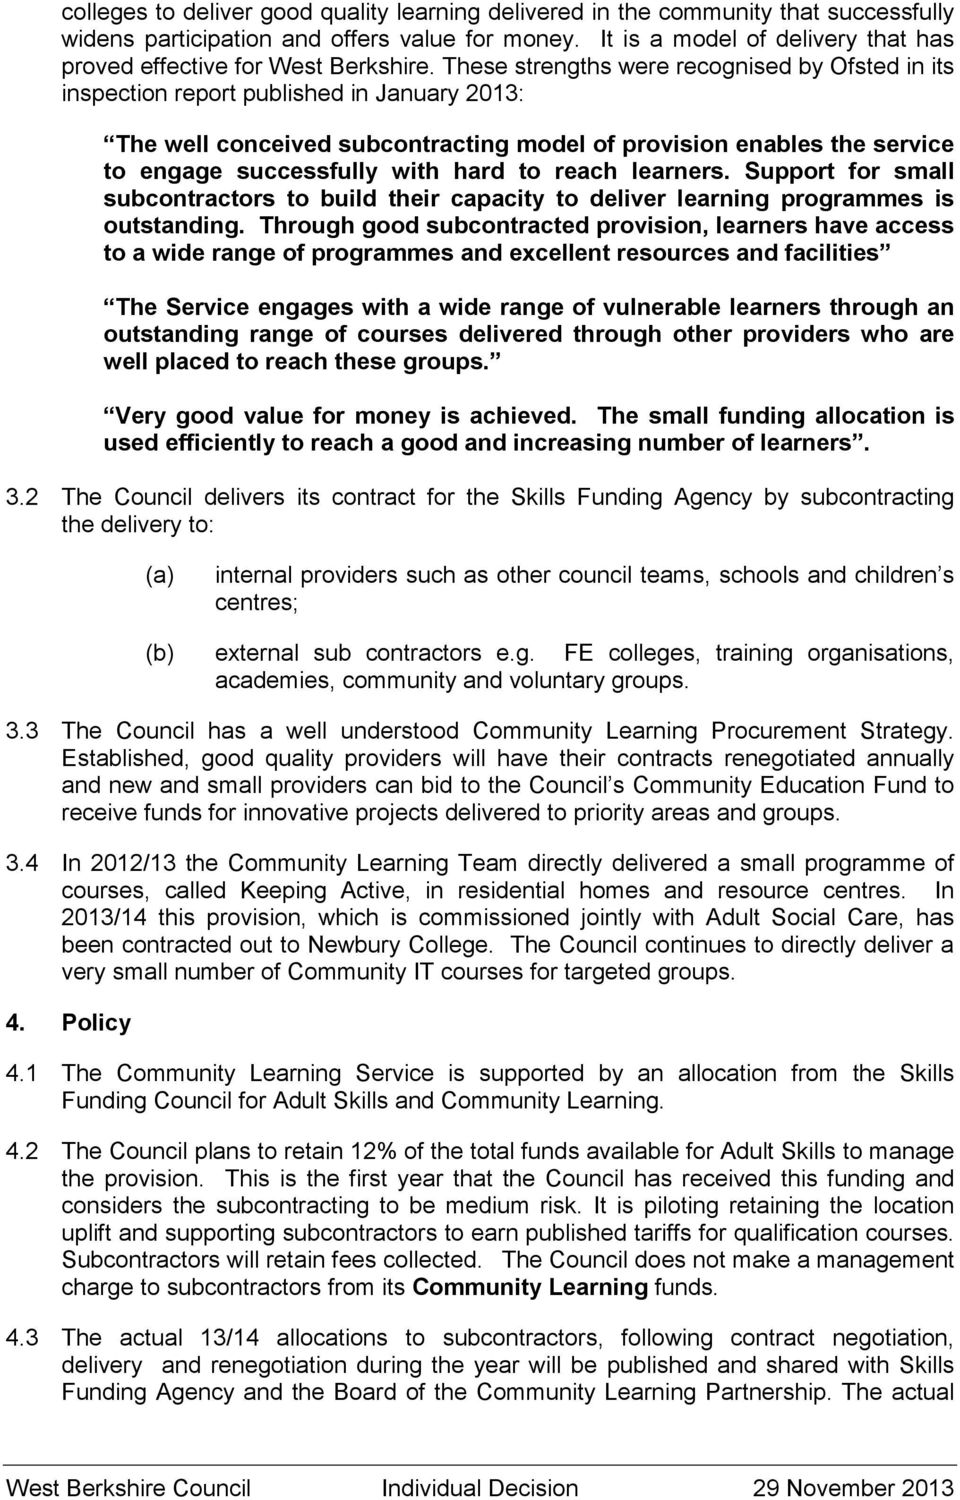 These strengths were recognised by Ofsted in its inspection report published in January 2013: The well conceived subcontracting model of provision enables the service to engage successfully with hard